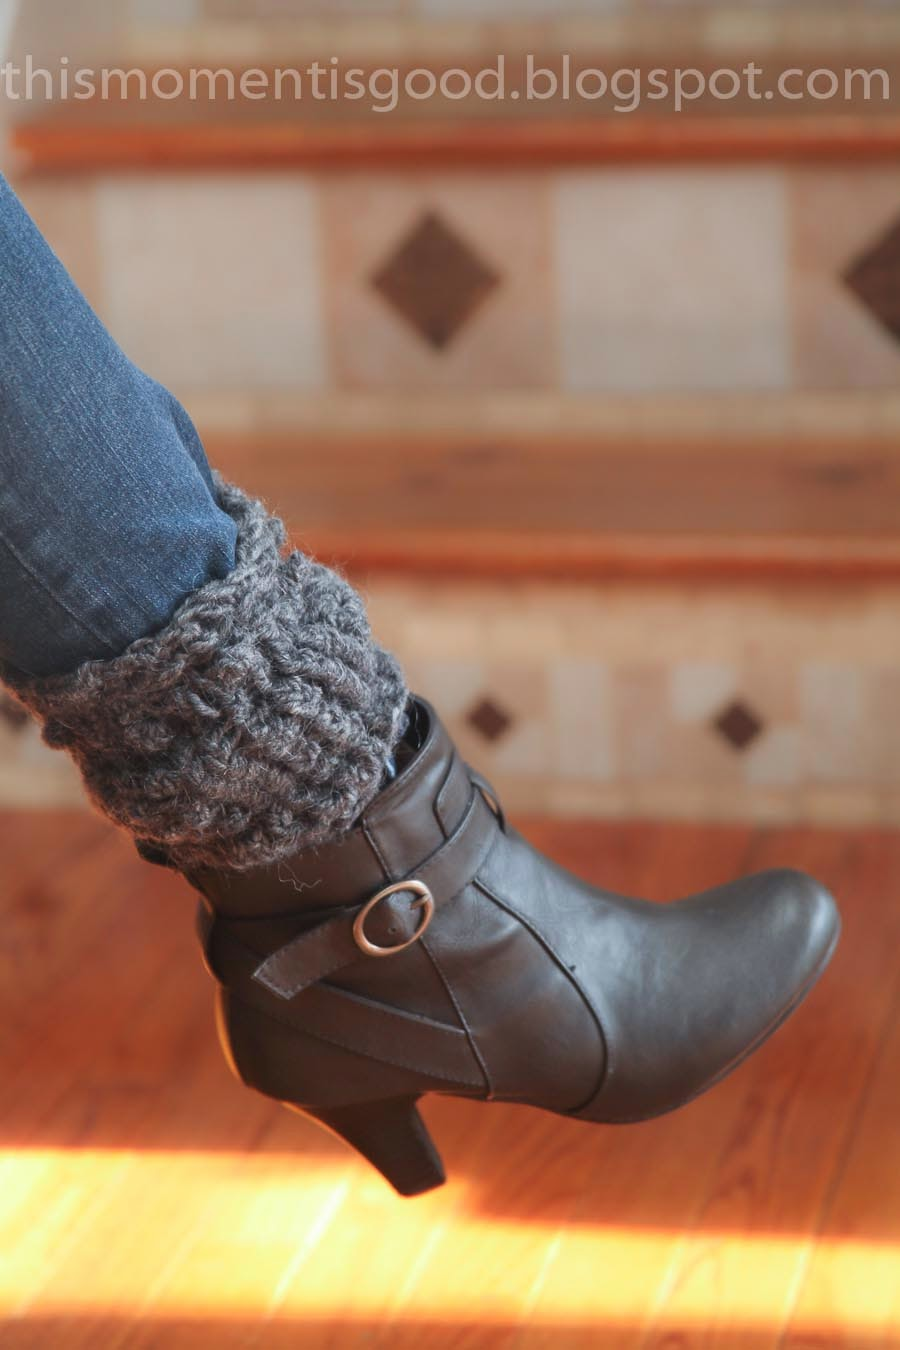 LOOM KNIT TEXTURED BOOT TOPPERS/CUFFS | Loom Knitting by This Moment ...